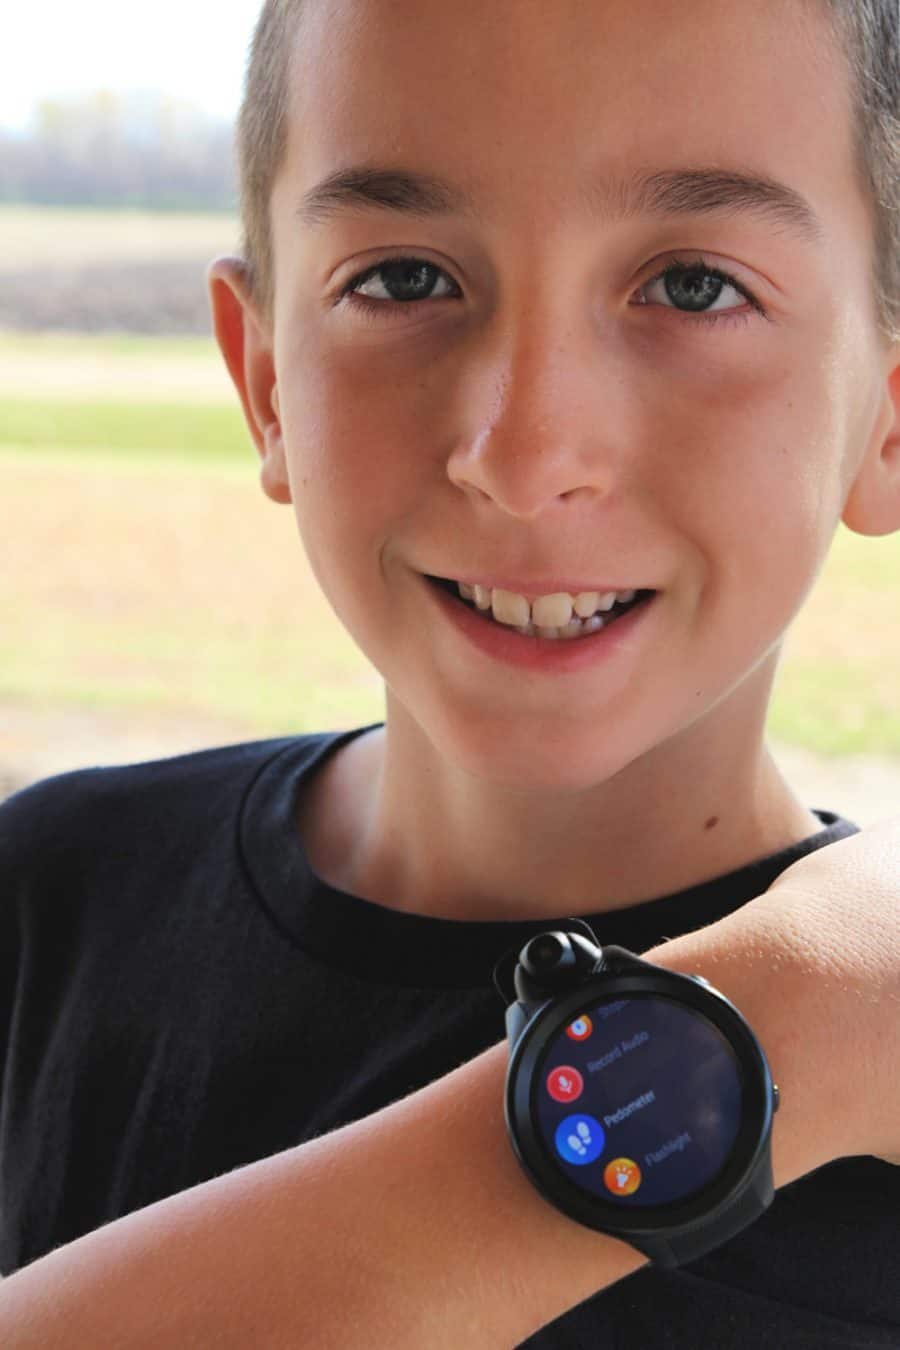 boy with smartwatch - Fennec Kids Smartwatch Review